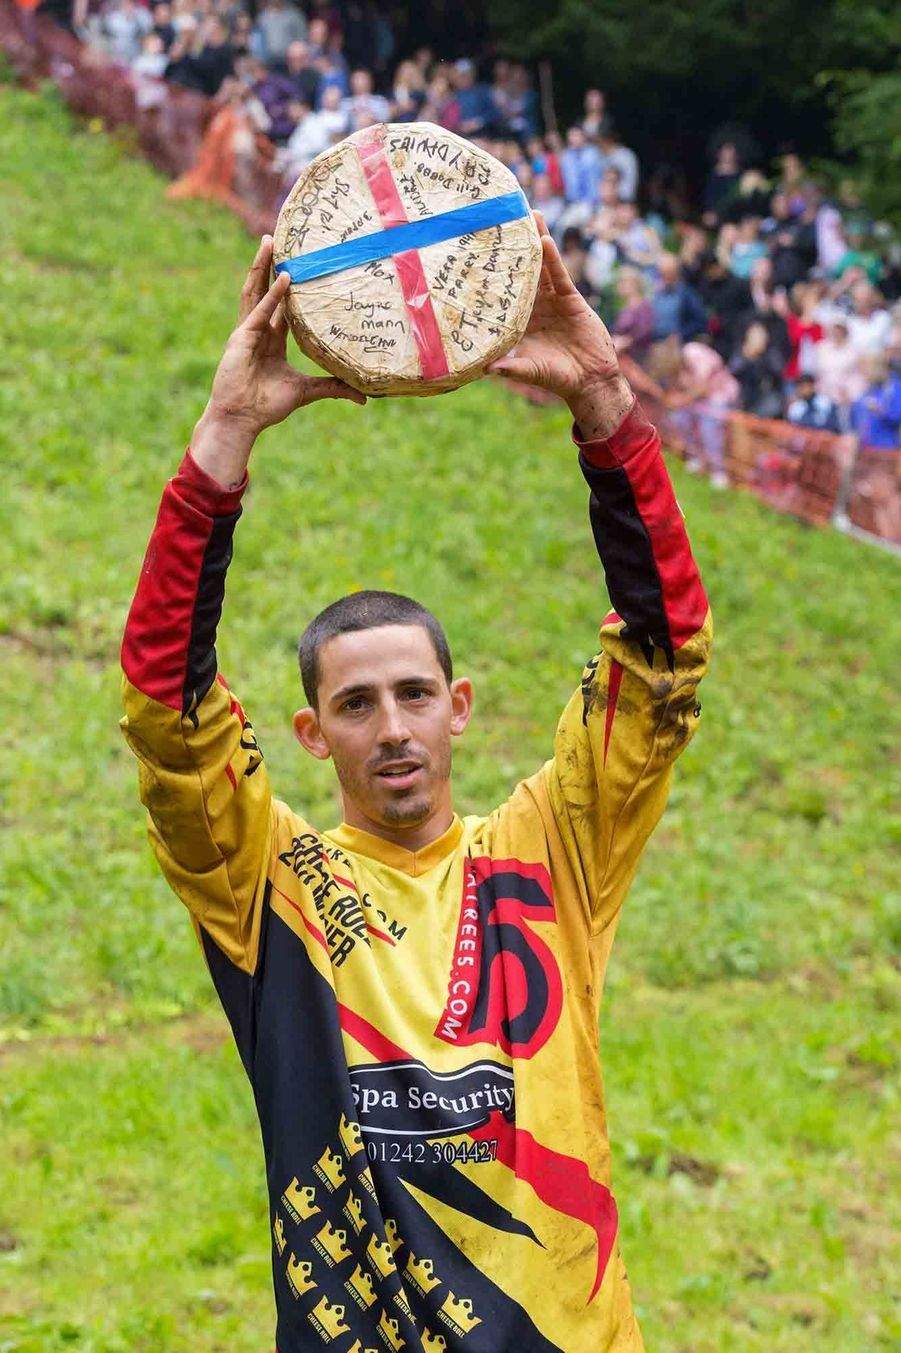 Chris Andreson, victorieux au Gloucestershire Cheese Rolling.